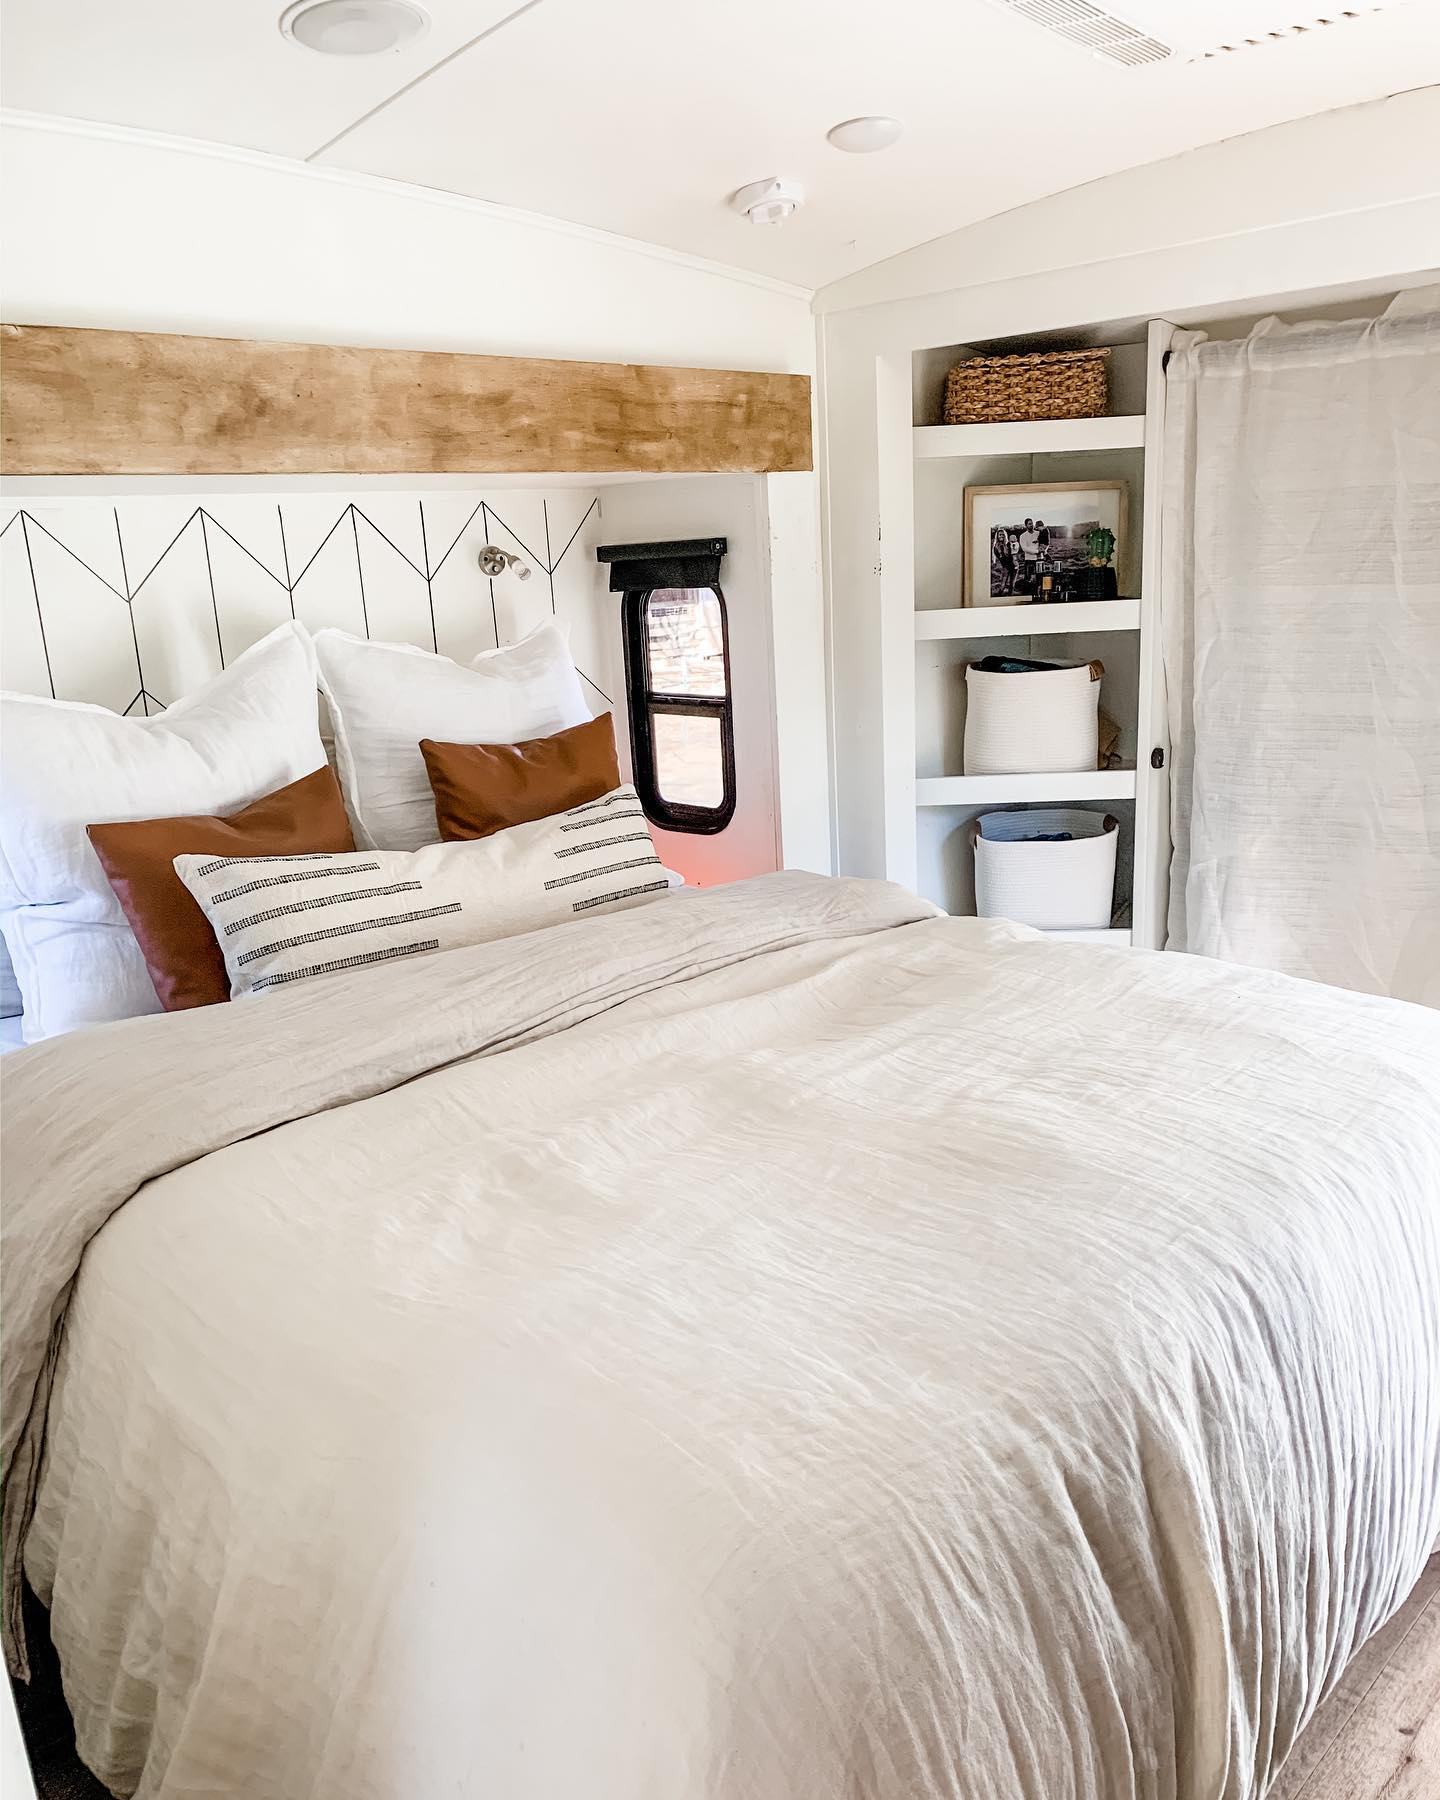 Sustainable furniture & home decor:  Off-white bedspread, with white and brown pillows and decor